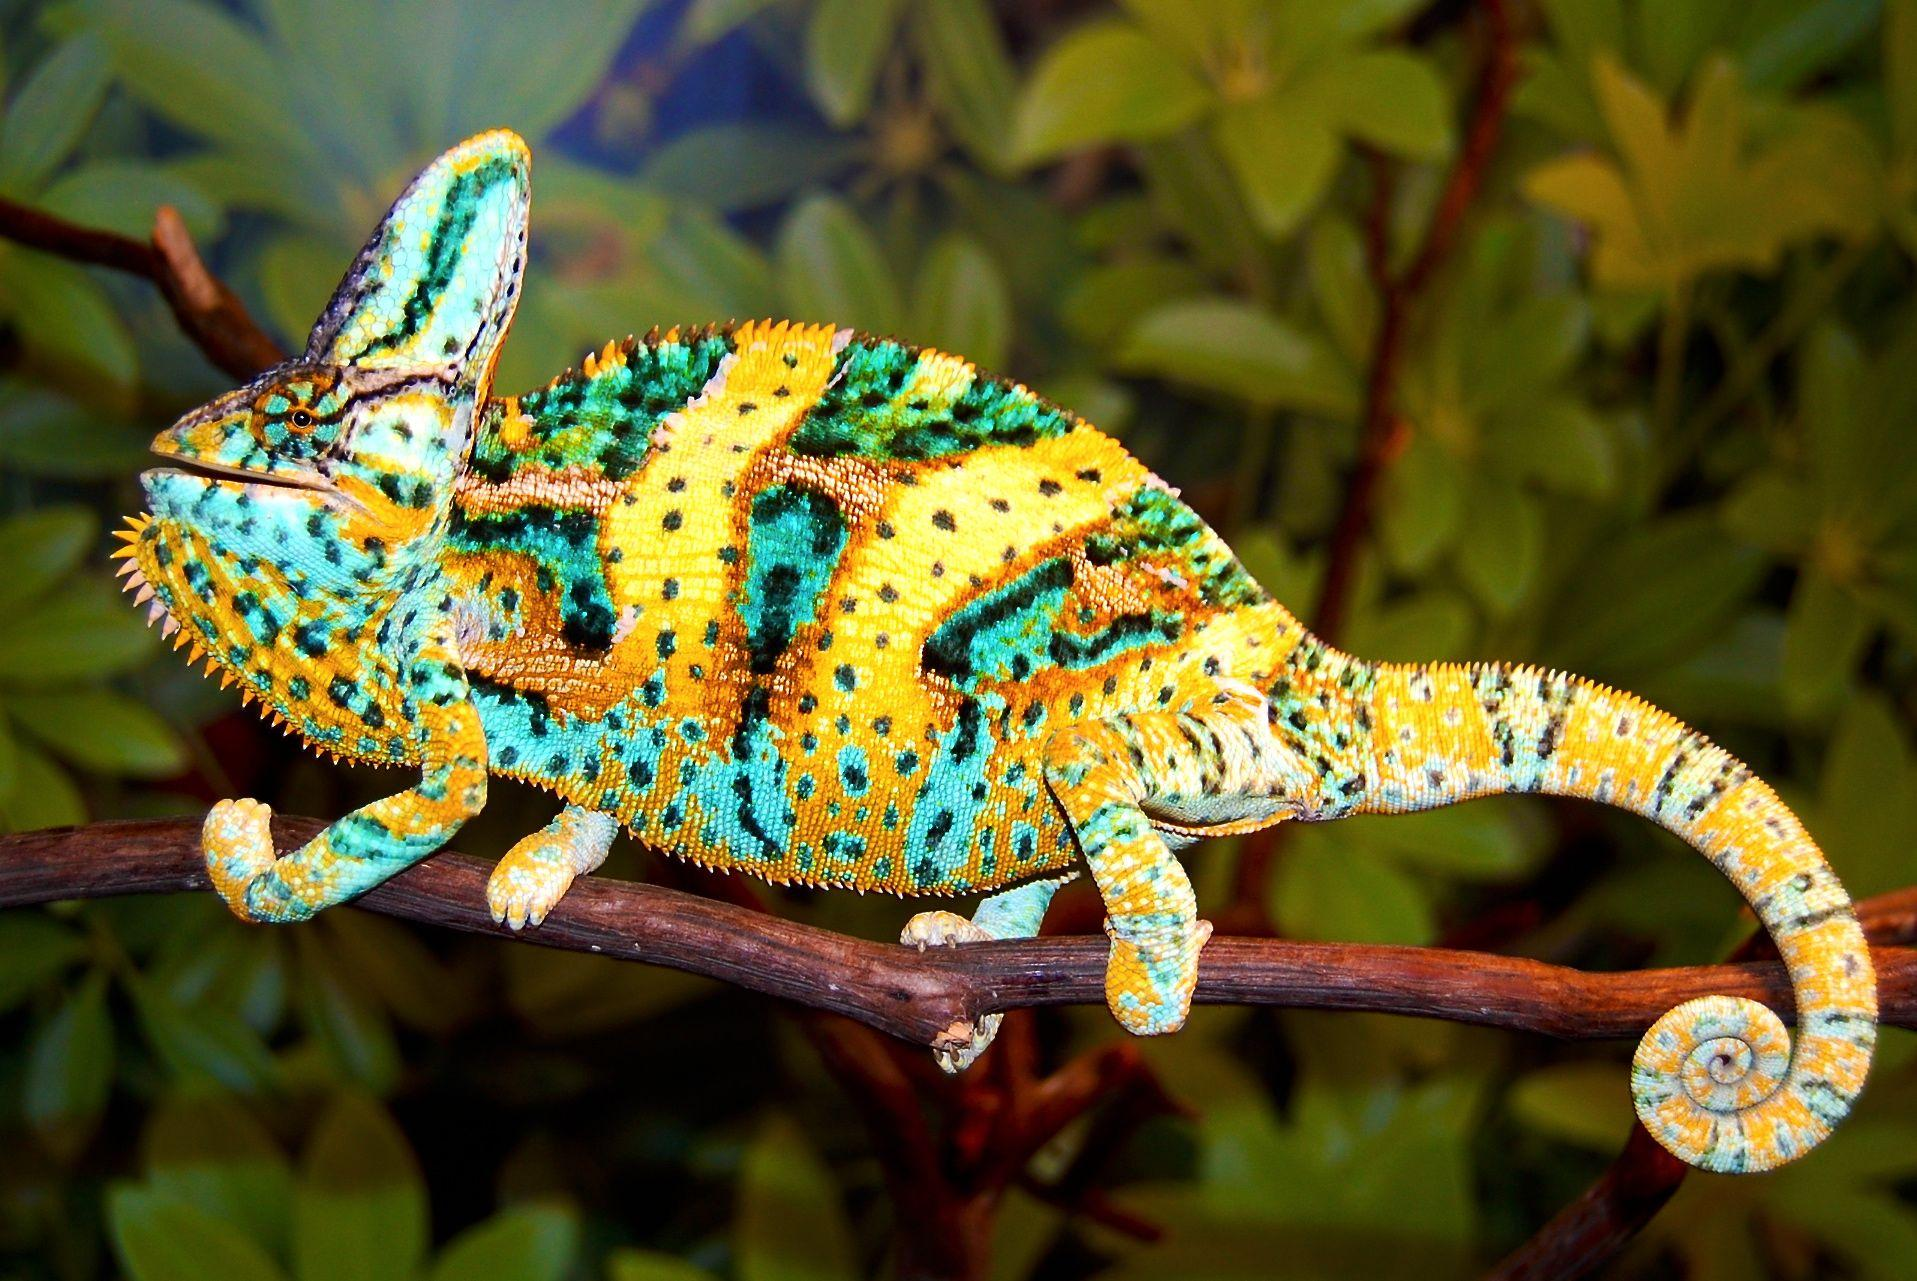 Chameleons Reptile Photos Free HD Wallpapers Download